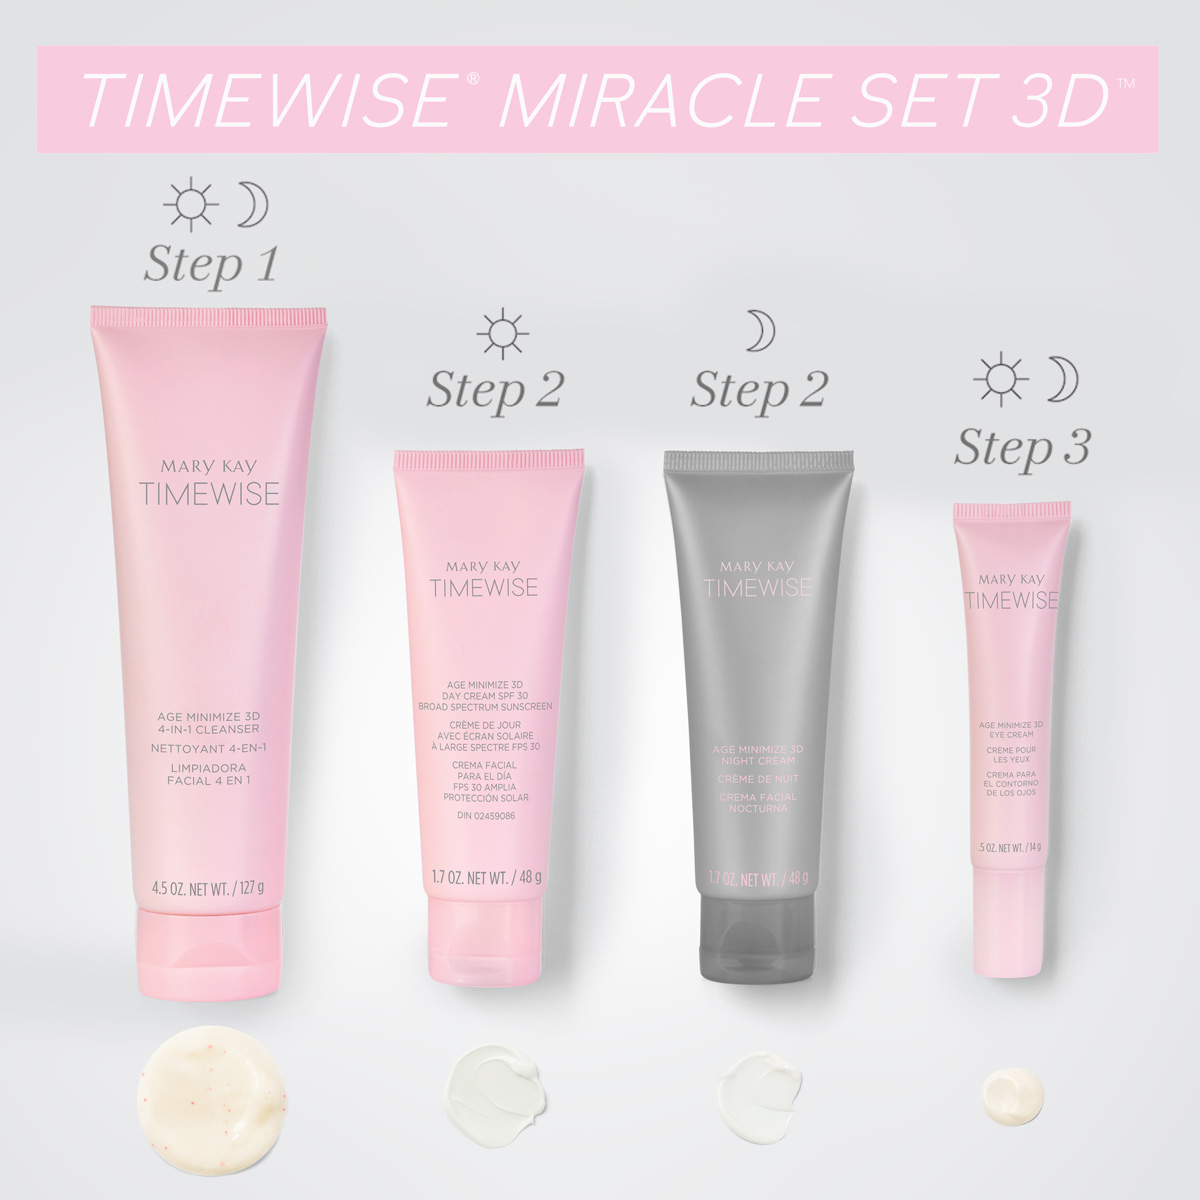 Miracle-Set-3D-SM-Steps-en-us.jpg